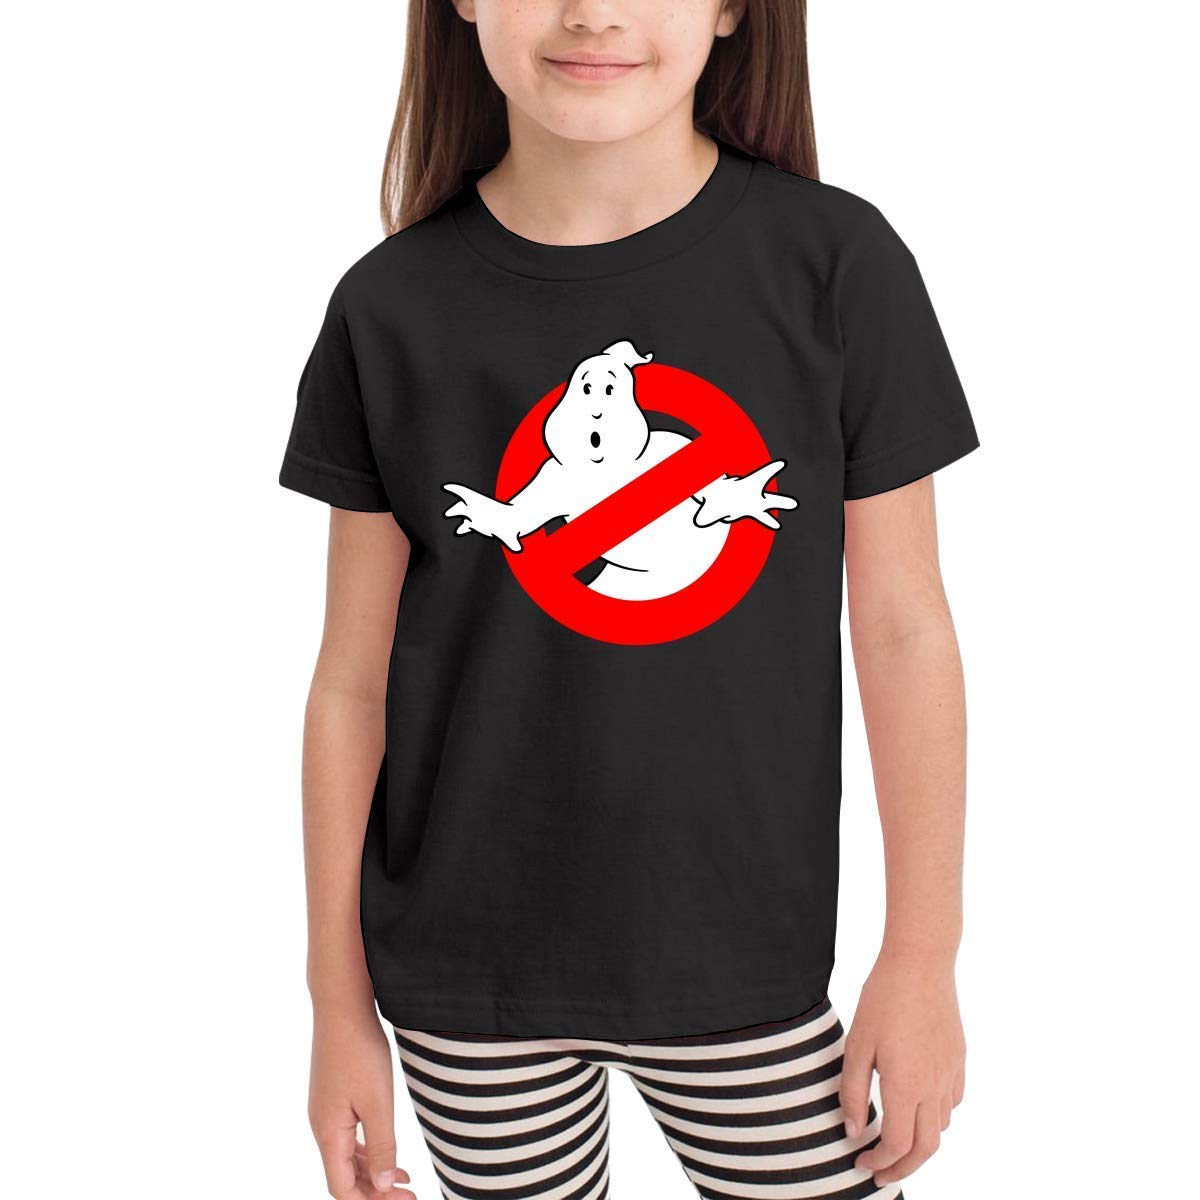 CXHKJ The Real Ghost Busters Kids Tee for Girls /& Boys Black